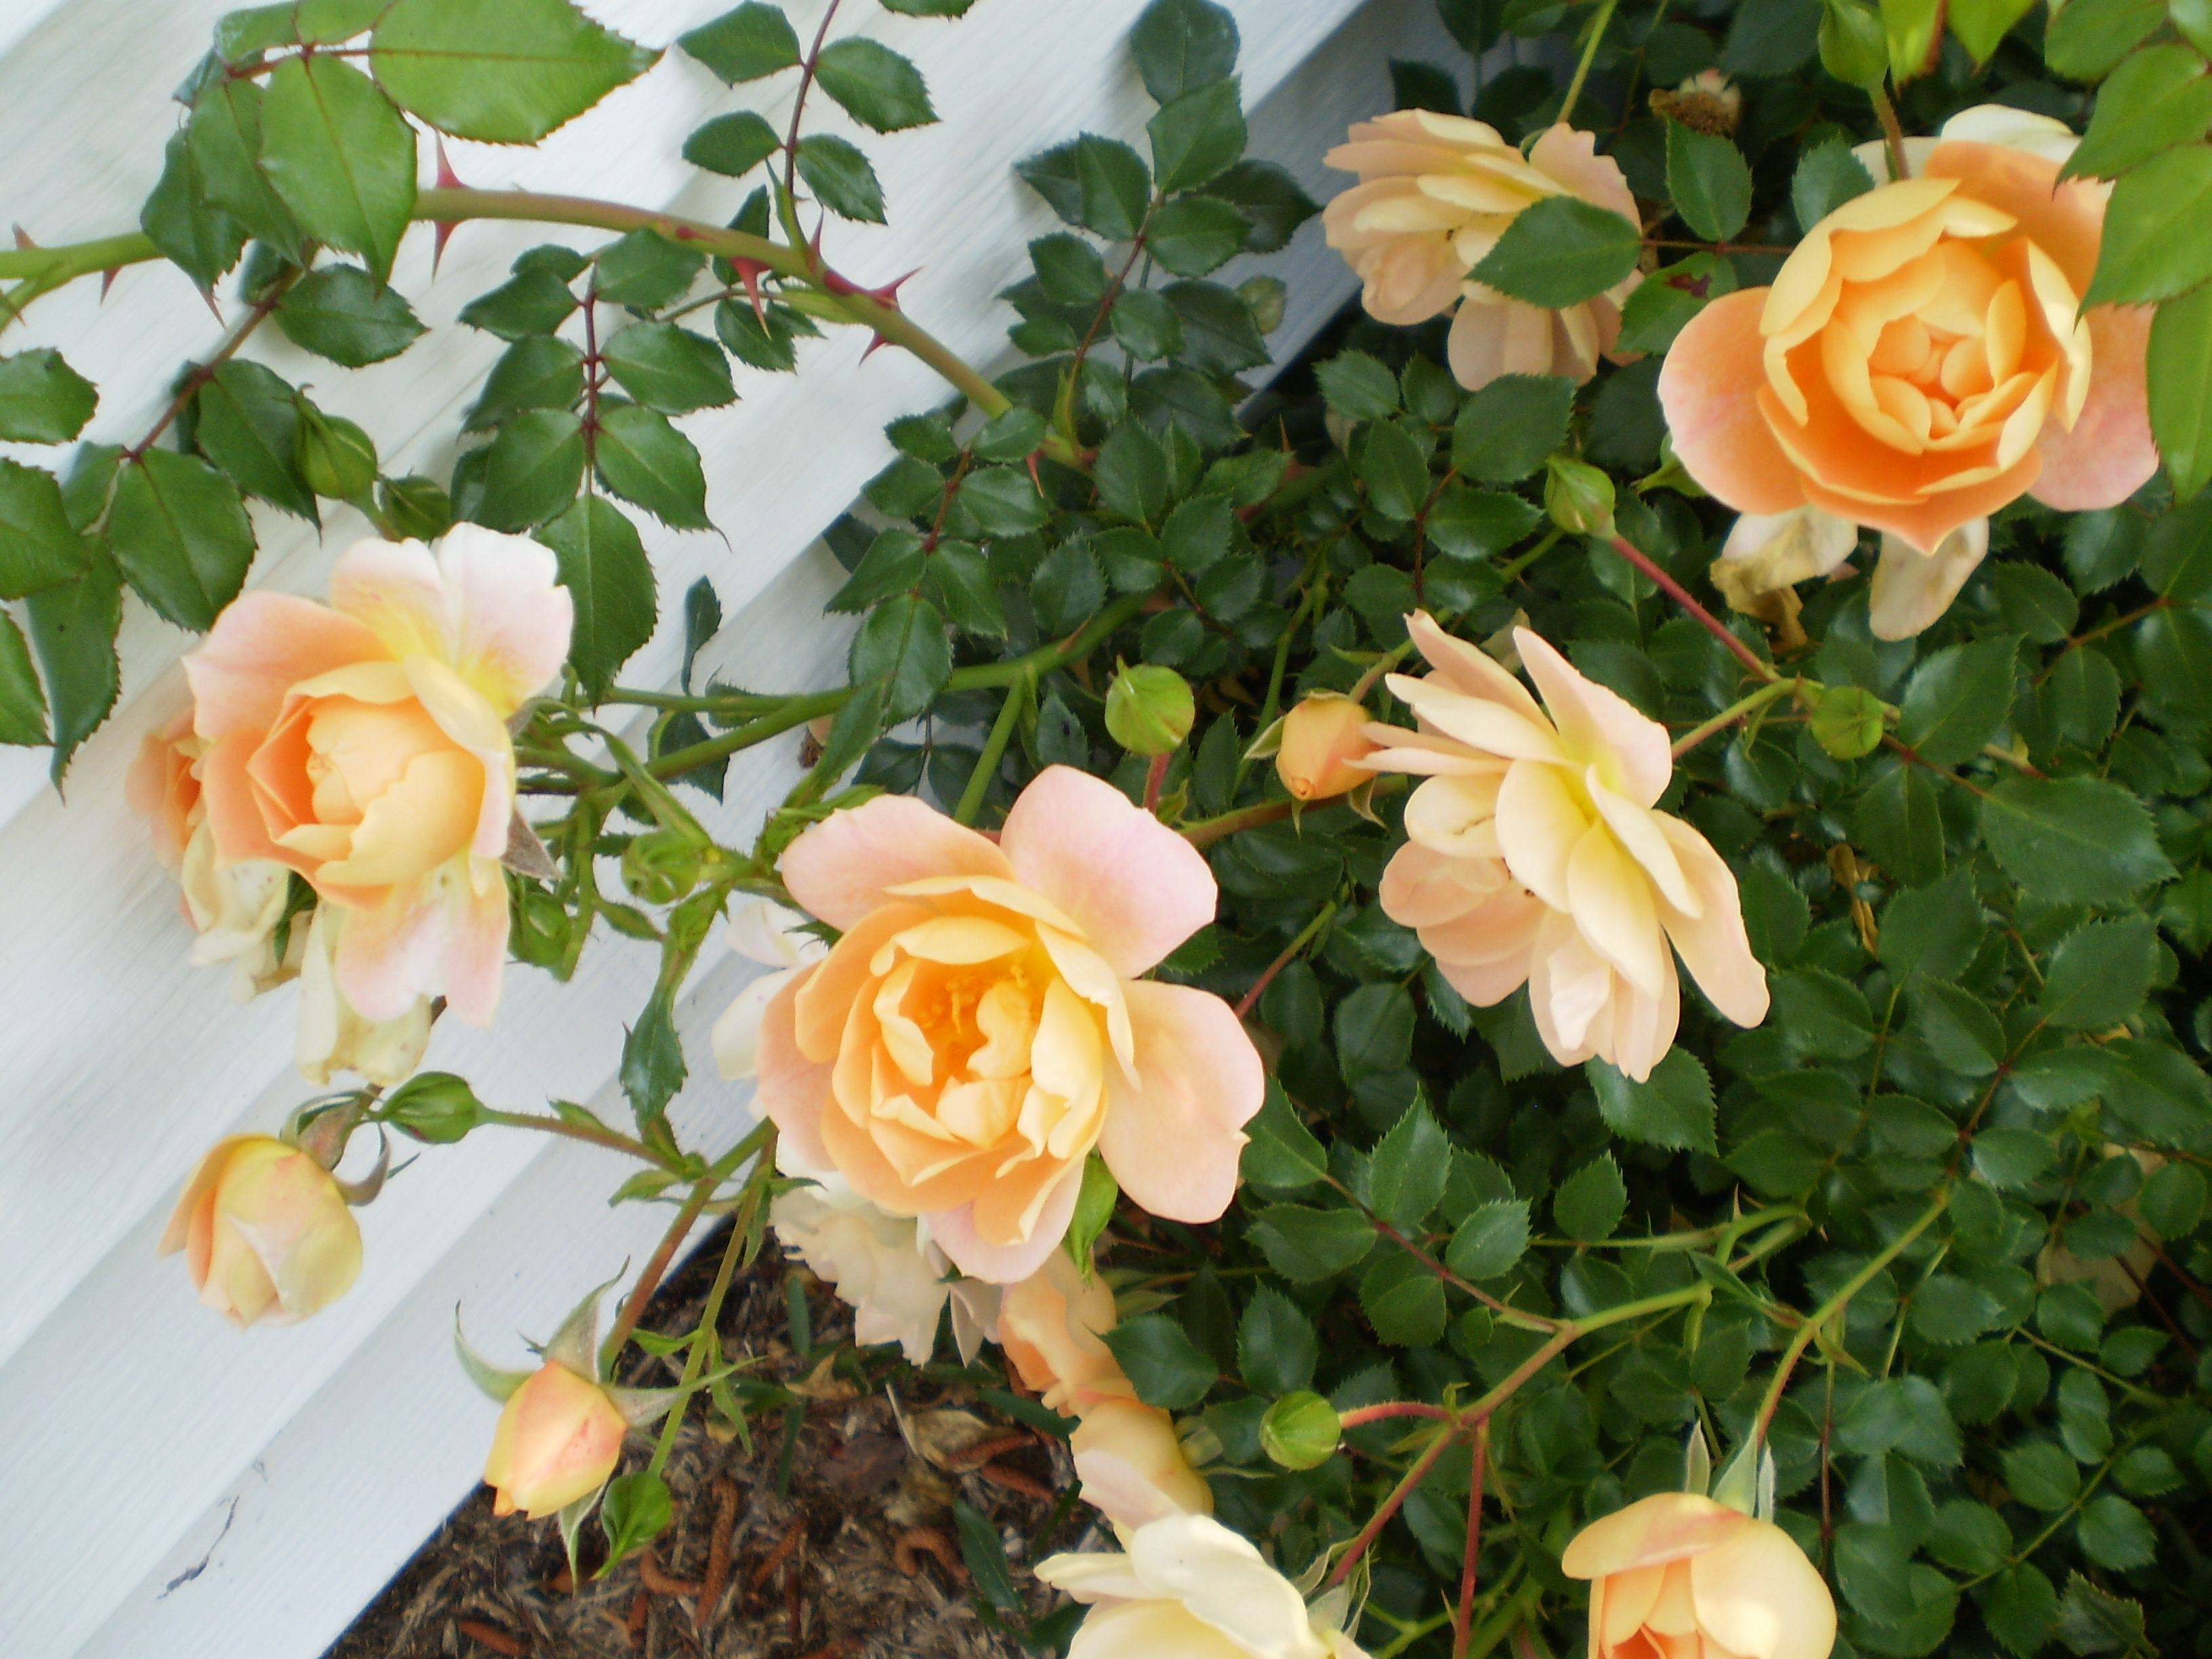 My backyard roses, great smell and beautiful colors